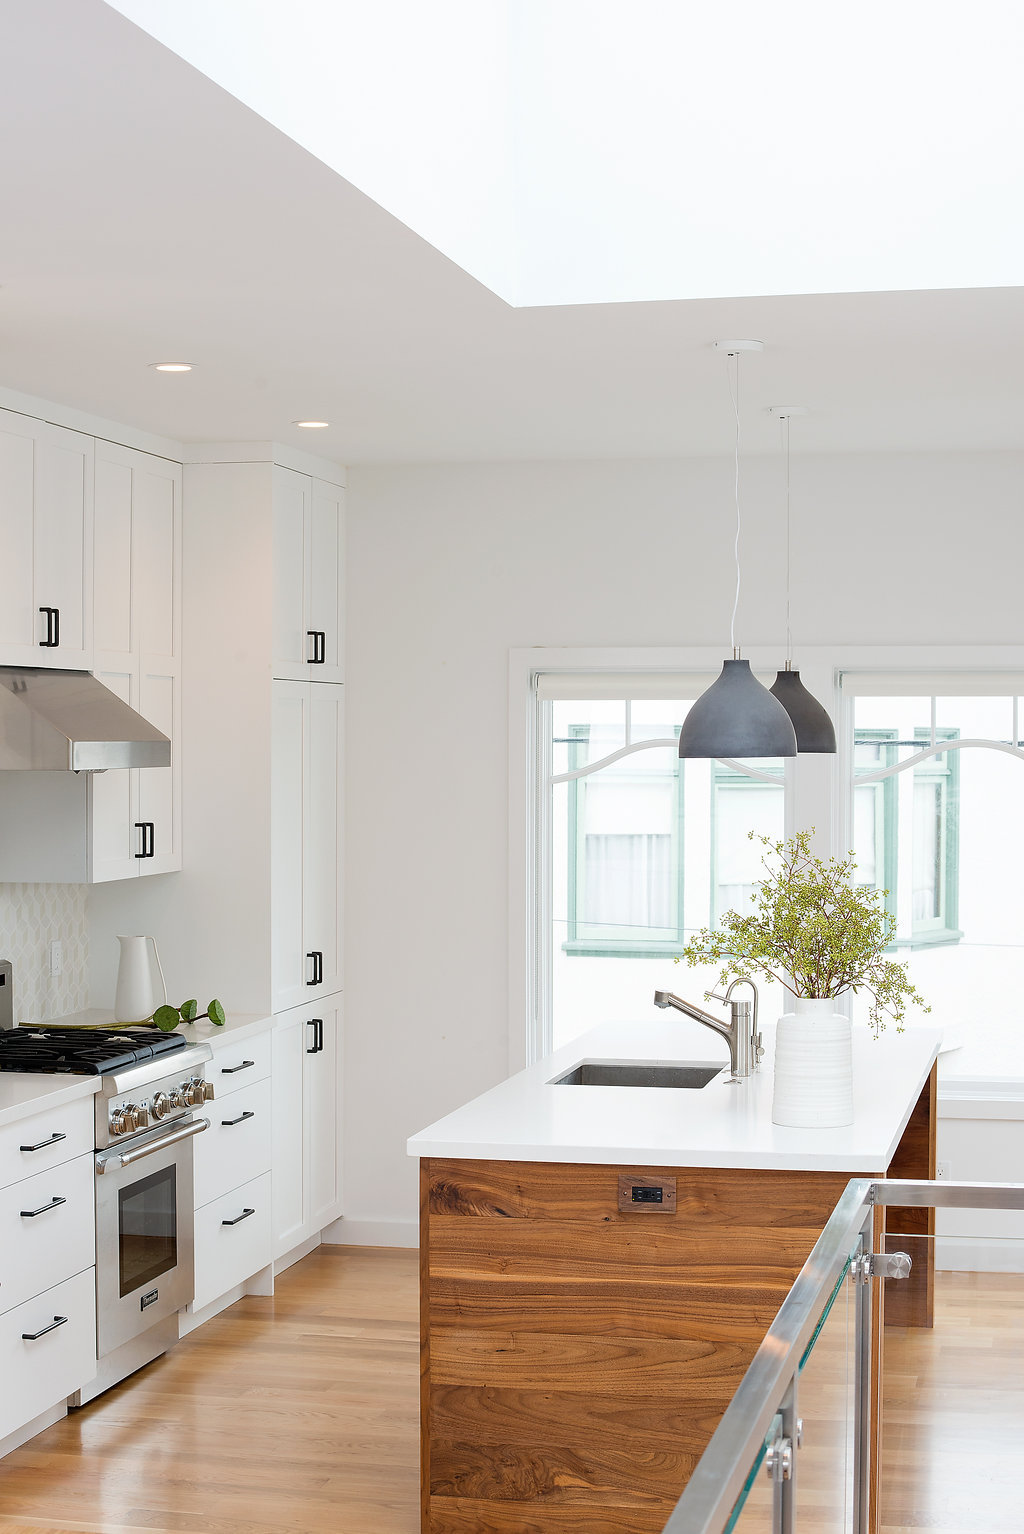 kitchen with white cabinets and wood island and white marble counters and stainless steel appliances and pendant lighting.jpg